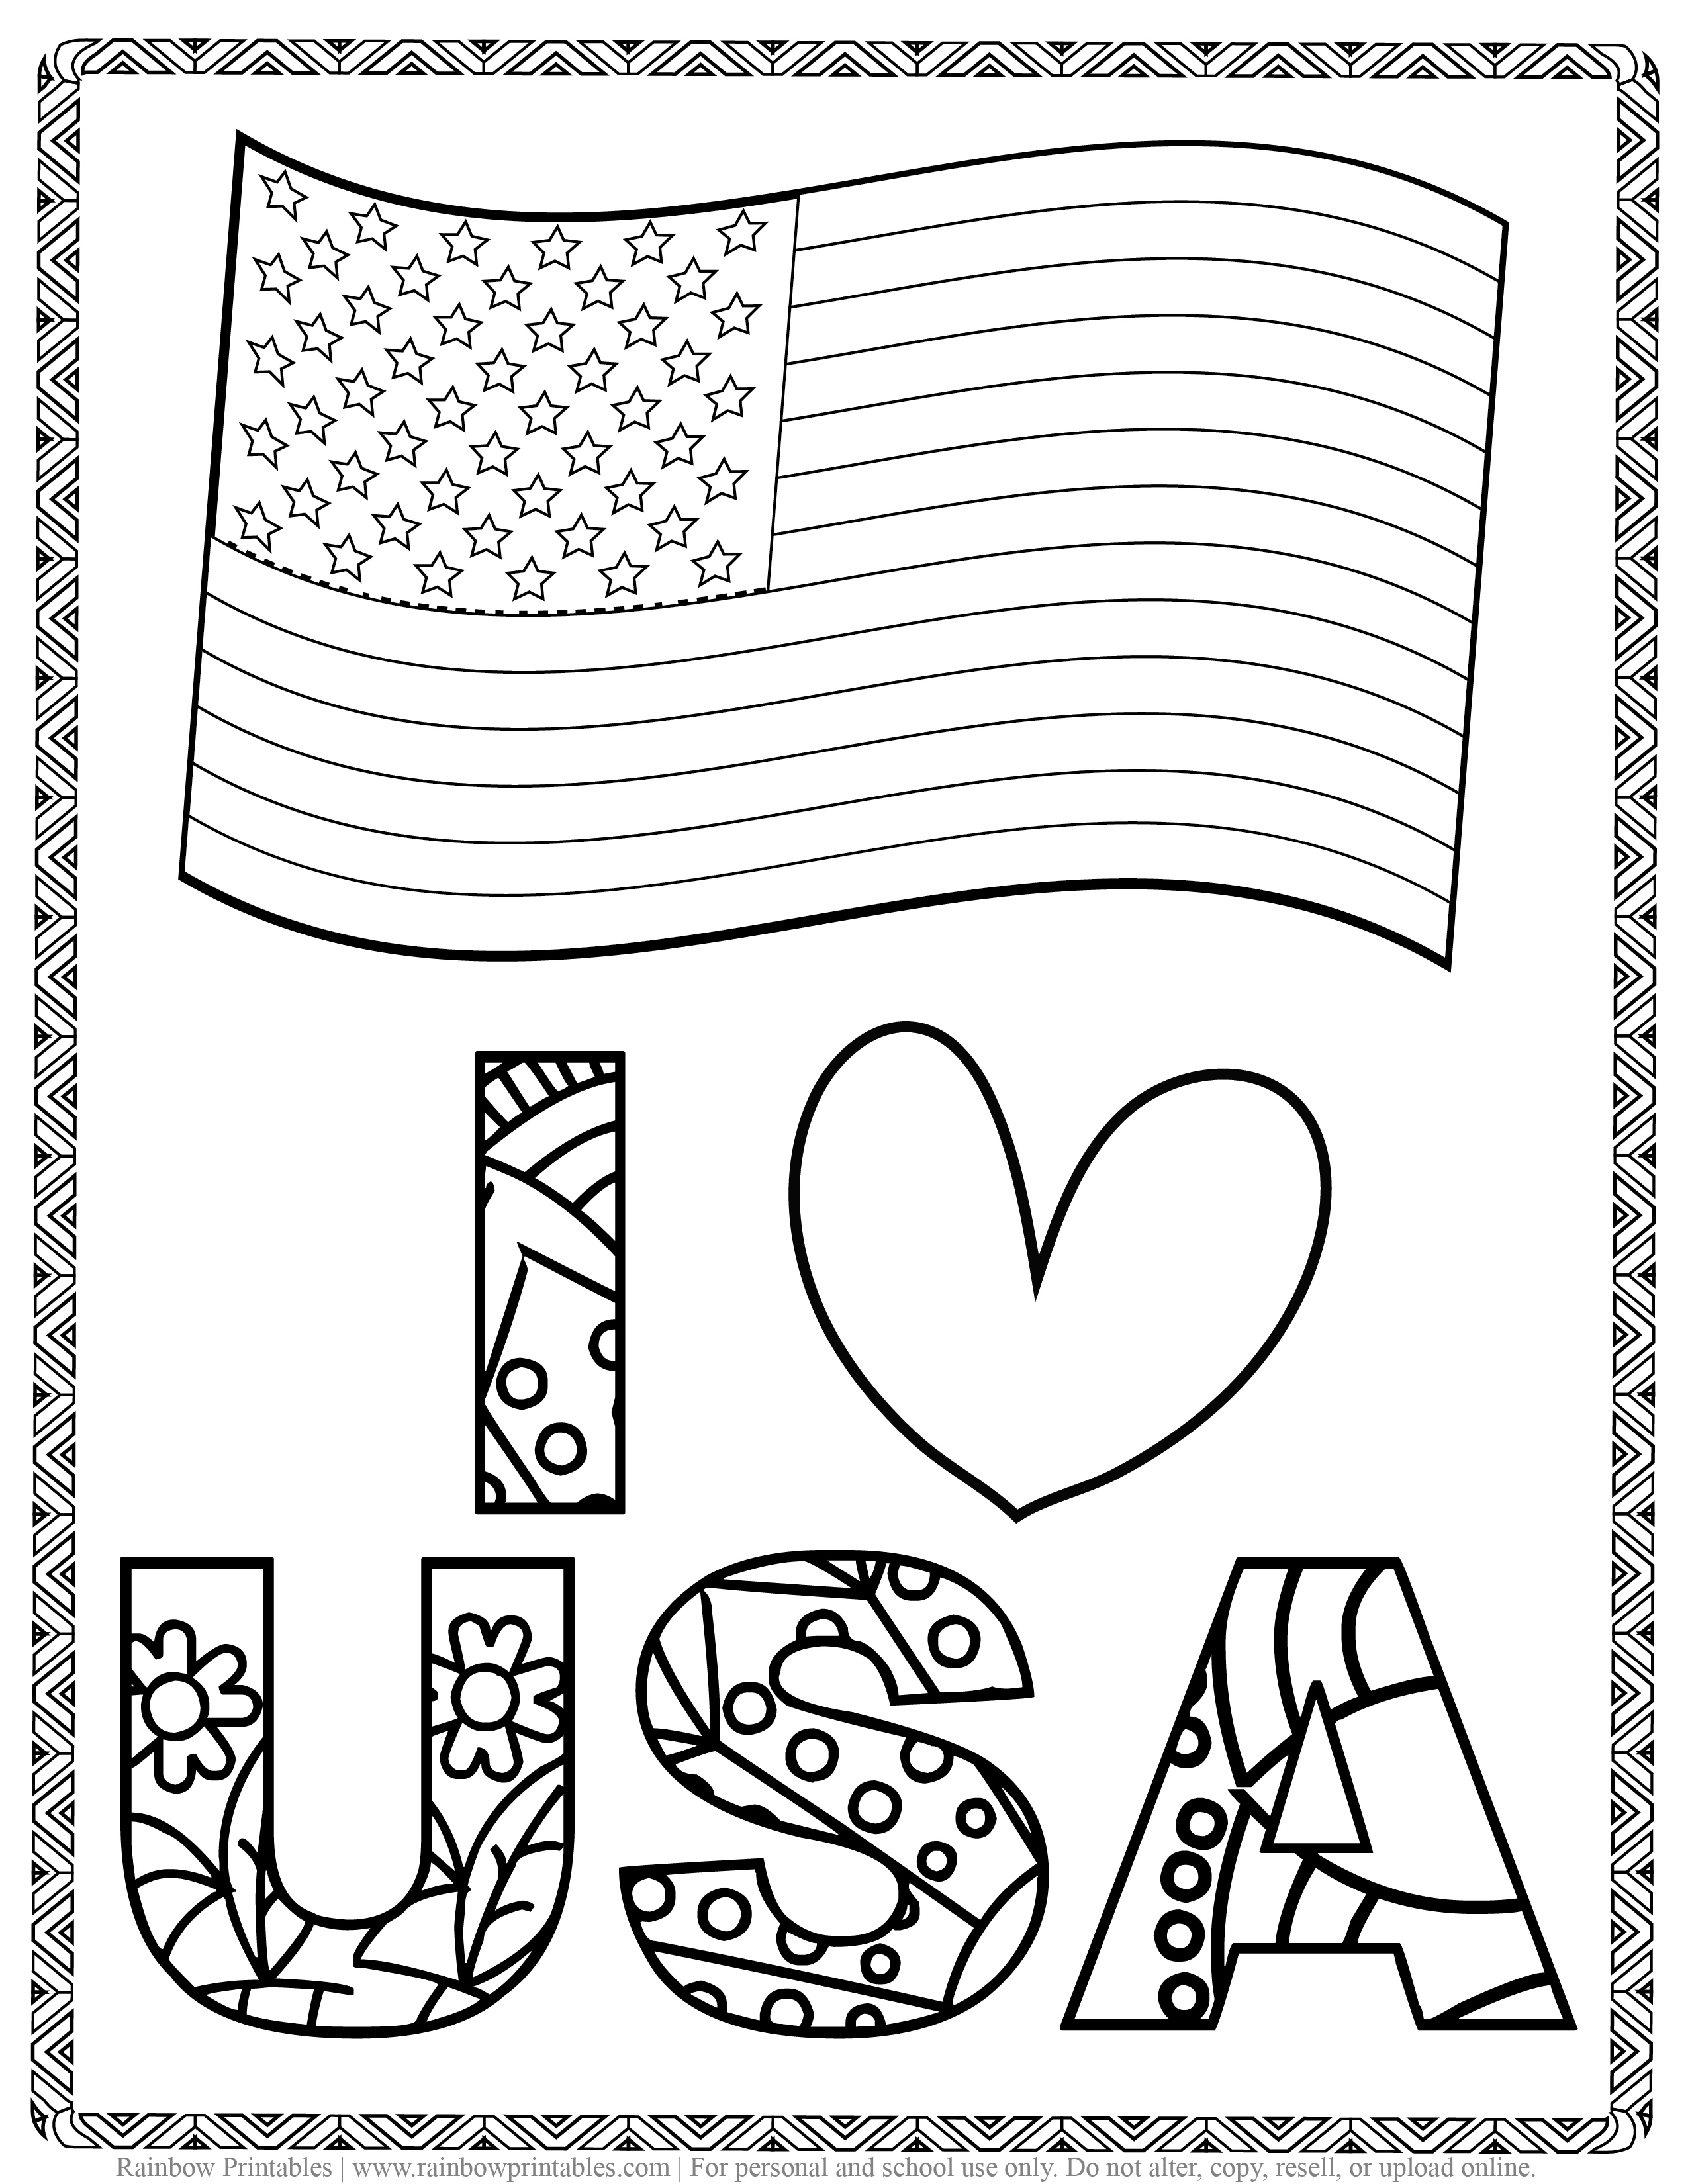 I HEART USA + flag Kids Patriotic July 4th Independence Day Printables for Children, Toddlers, America Coloring Pages, Activity for Preschool, Freedom